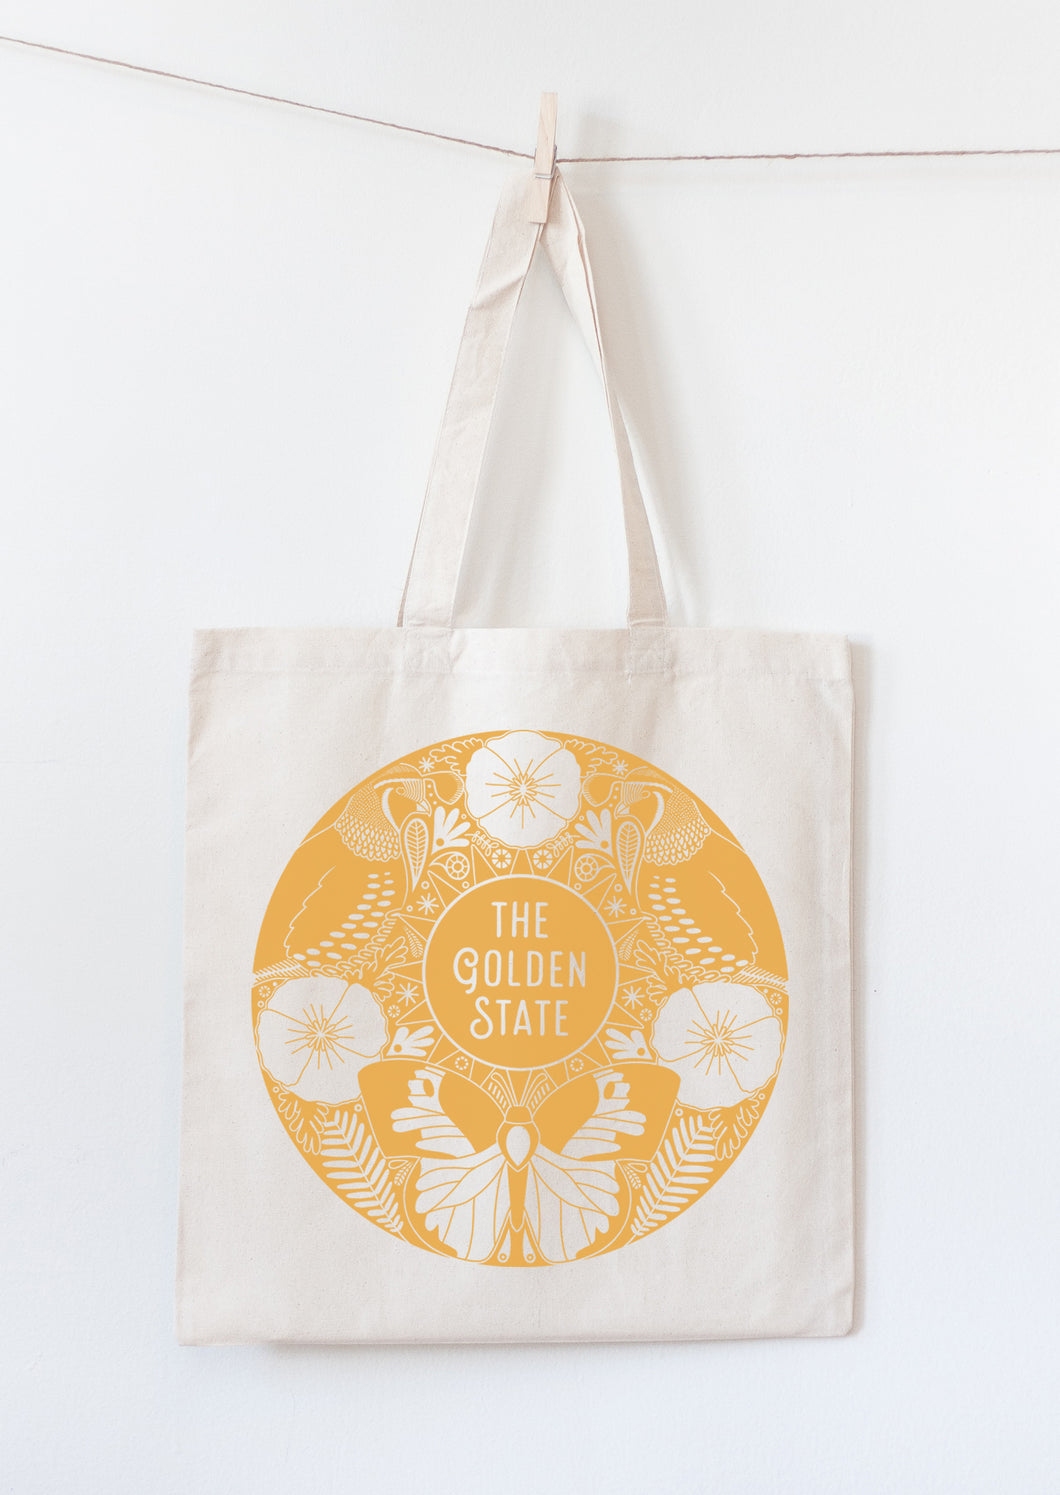 The Golden State tote bag with California state symbols